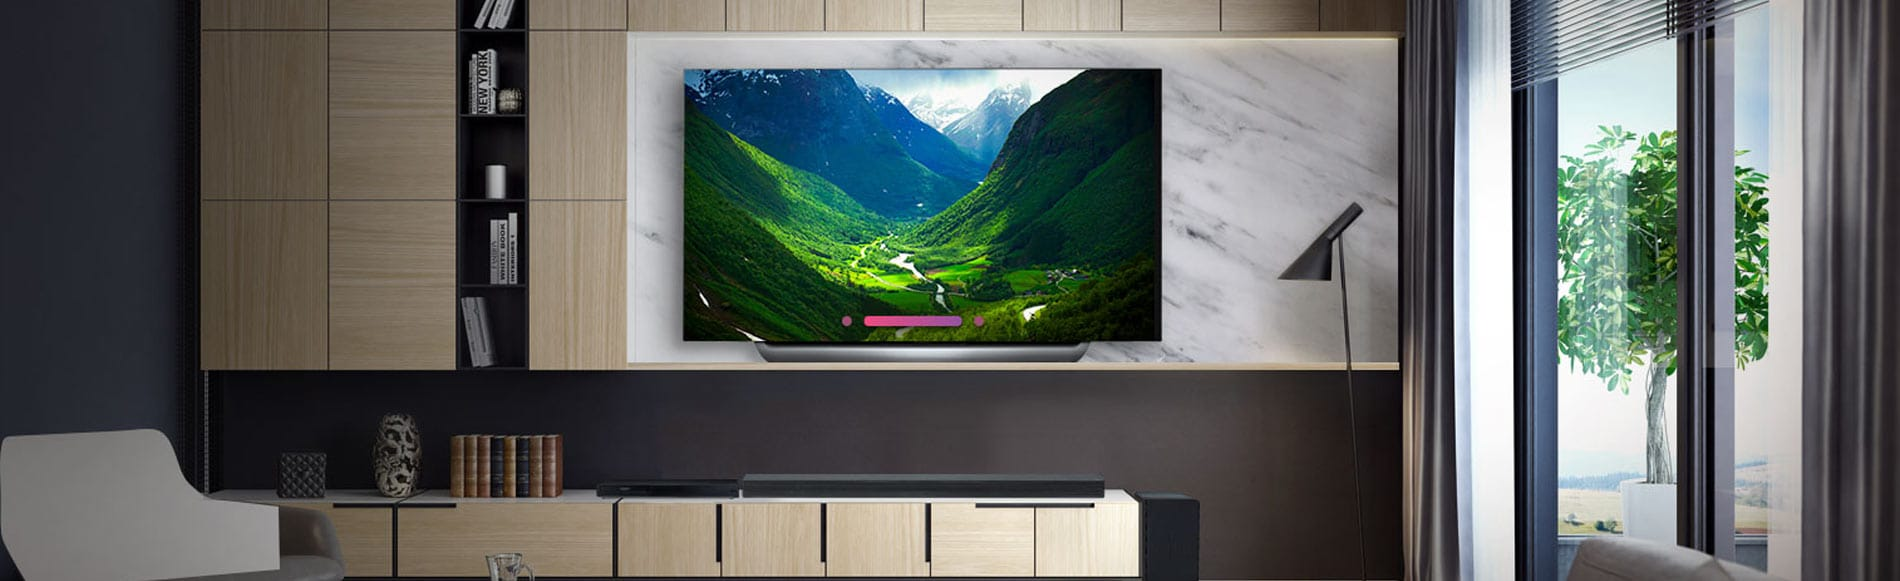 LG Electronics Products Online